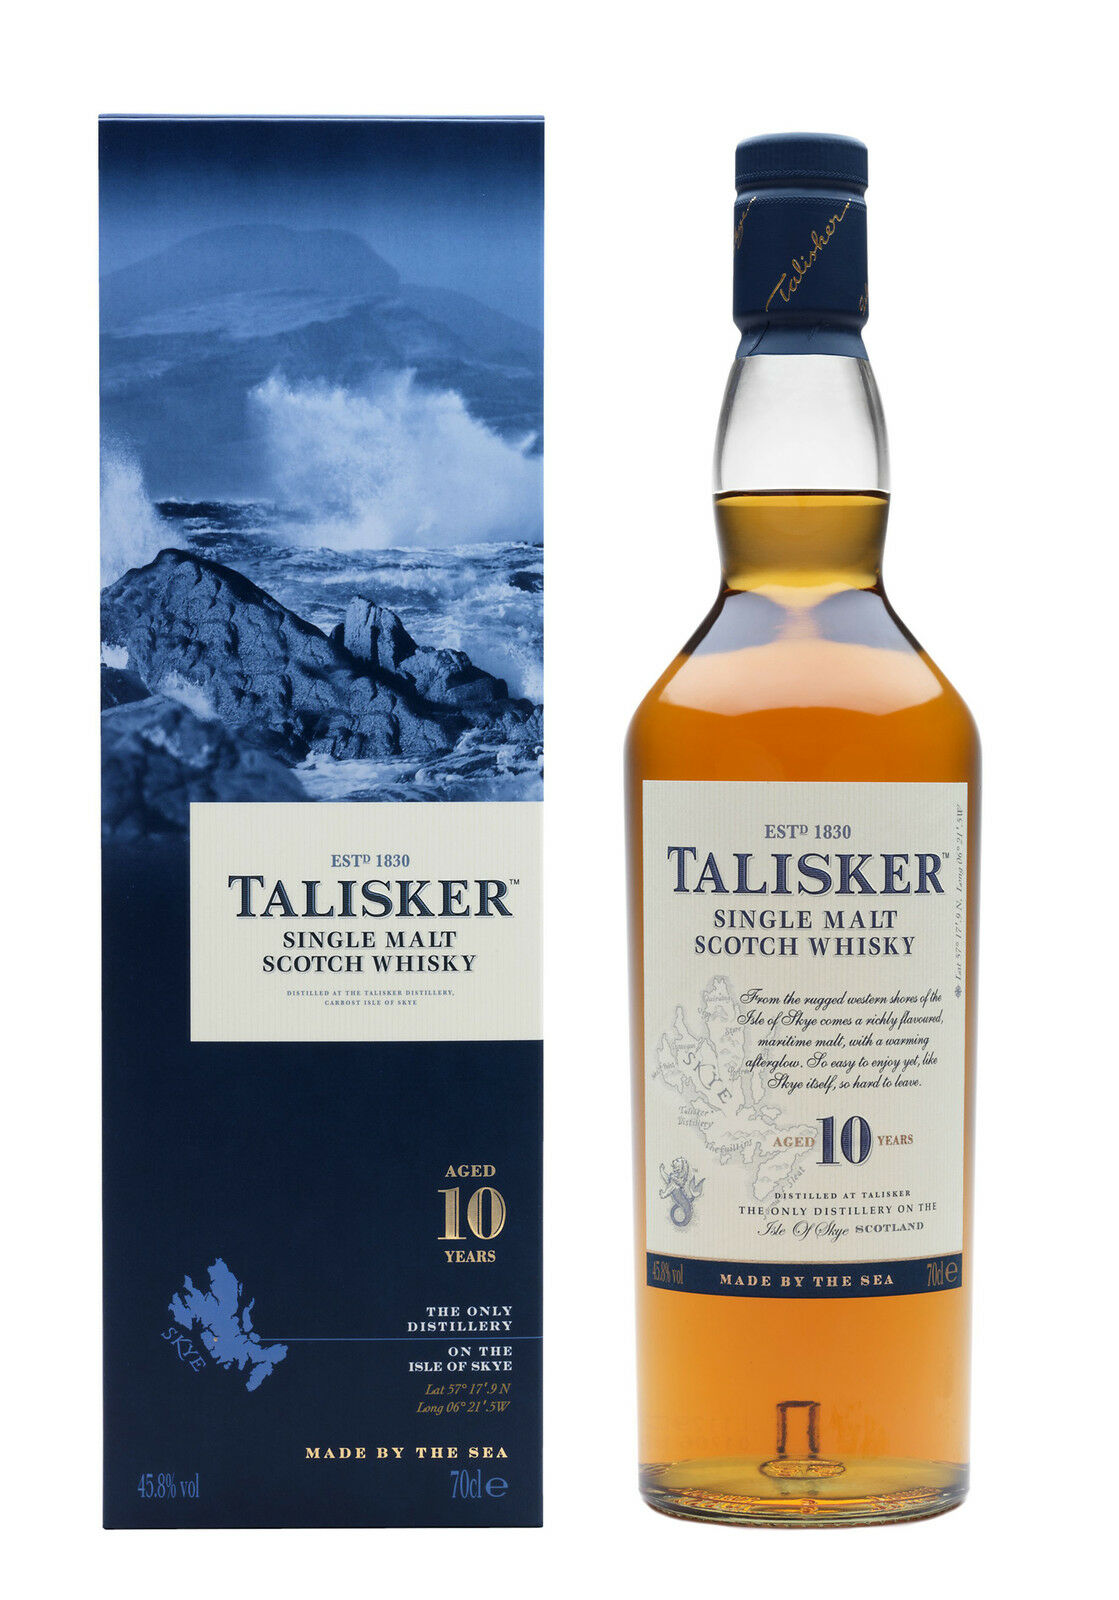 Talisker 10 Year Old Scotch Whisky 'whiskey' (700ml)